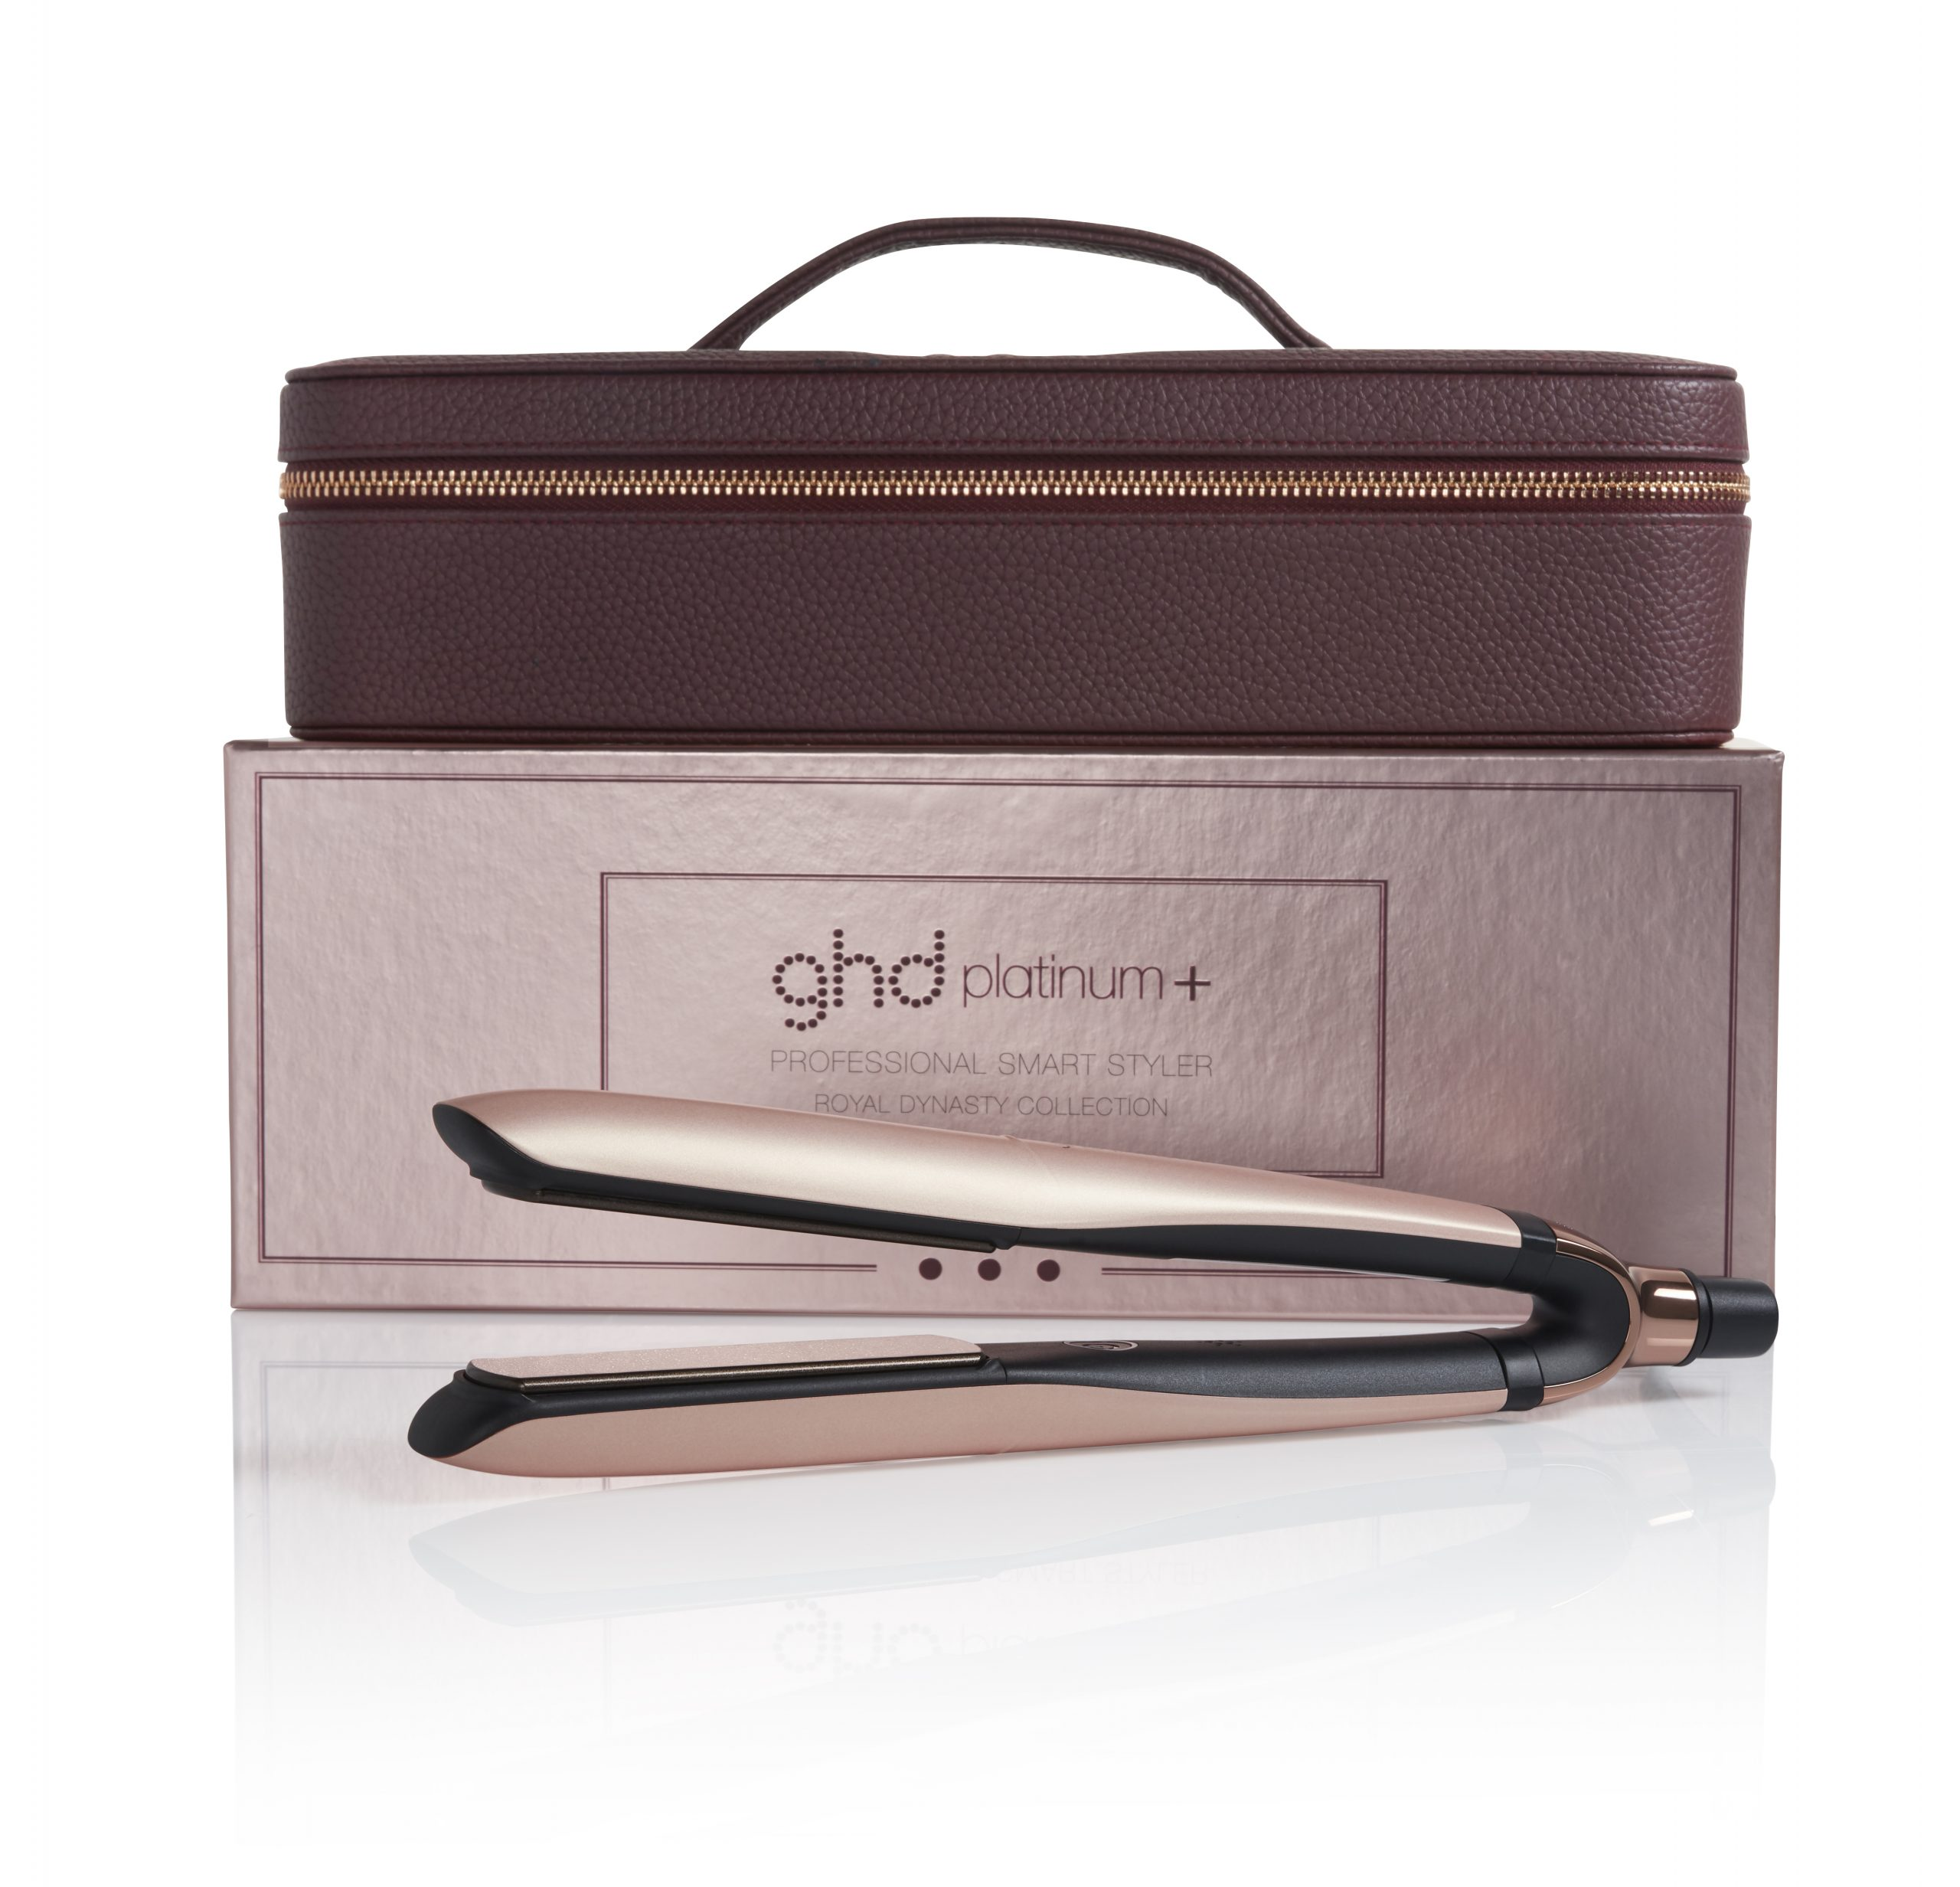 LIMITED EDITION ROSE GOLD Box Vanity case Plat 1 scaled